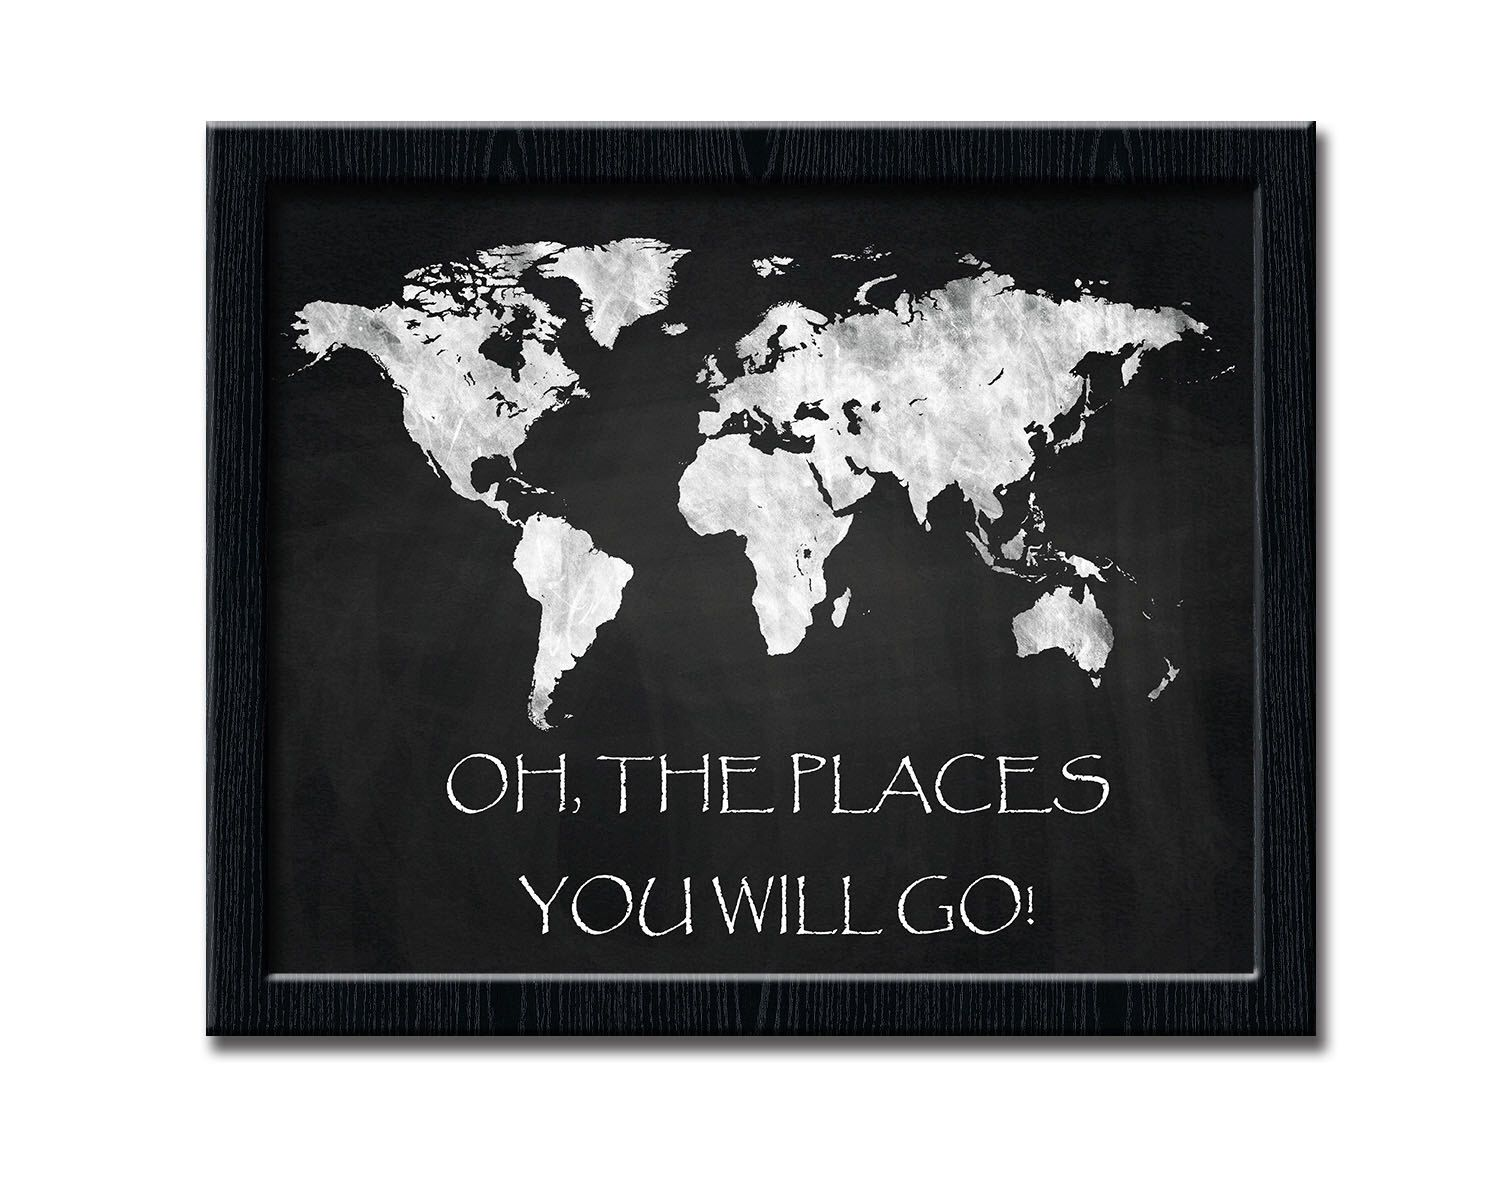 World map art print chalkboard world map 10x8 and 14x11 chalkboard world map art print chalkboard world map 10x8 and 14x11 chalkboard poster printable gumiabroncs Images